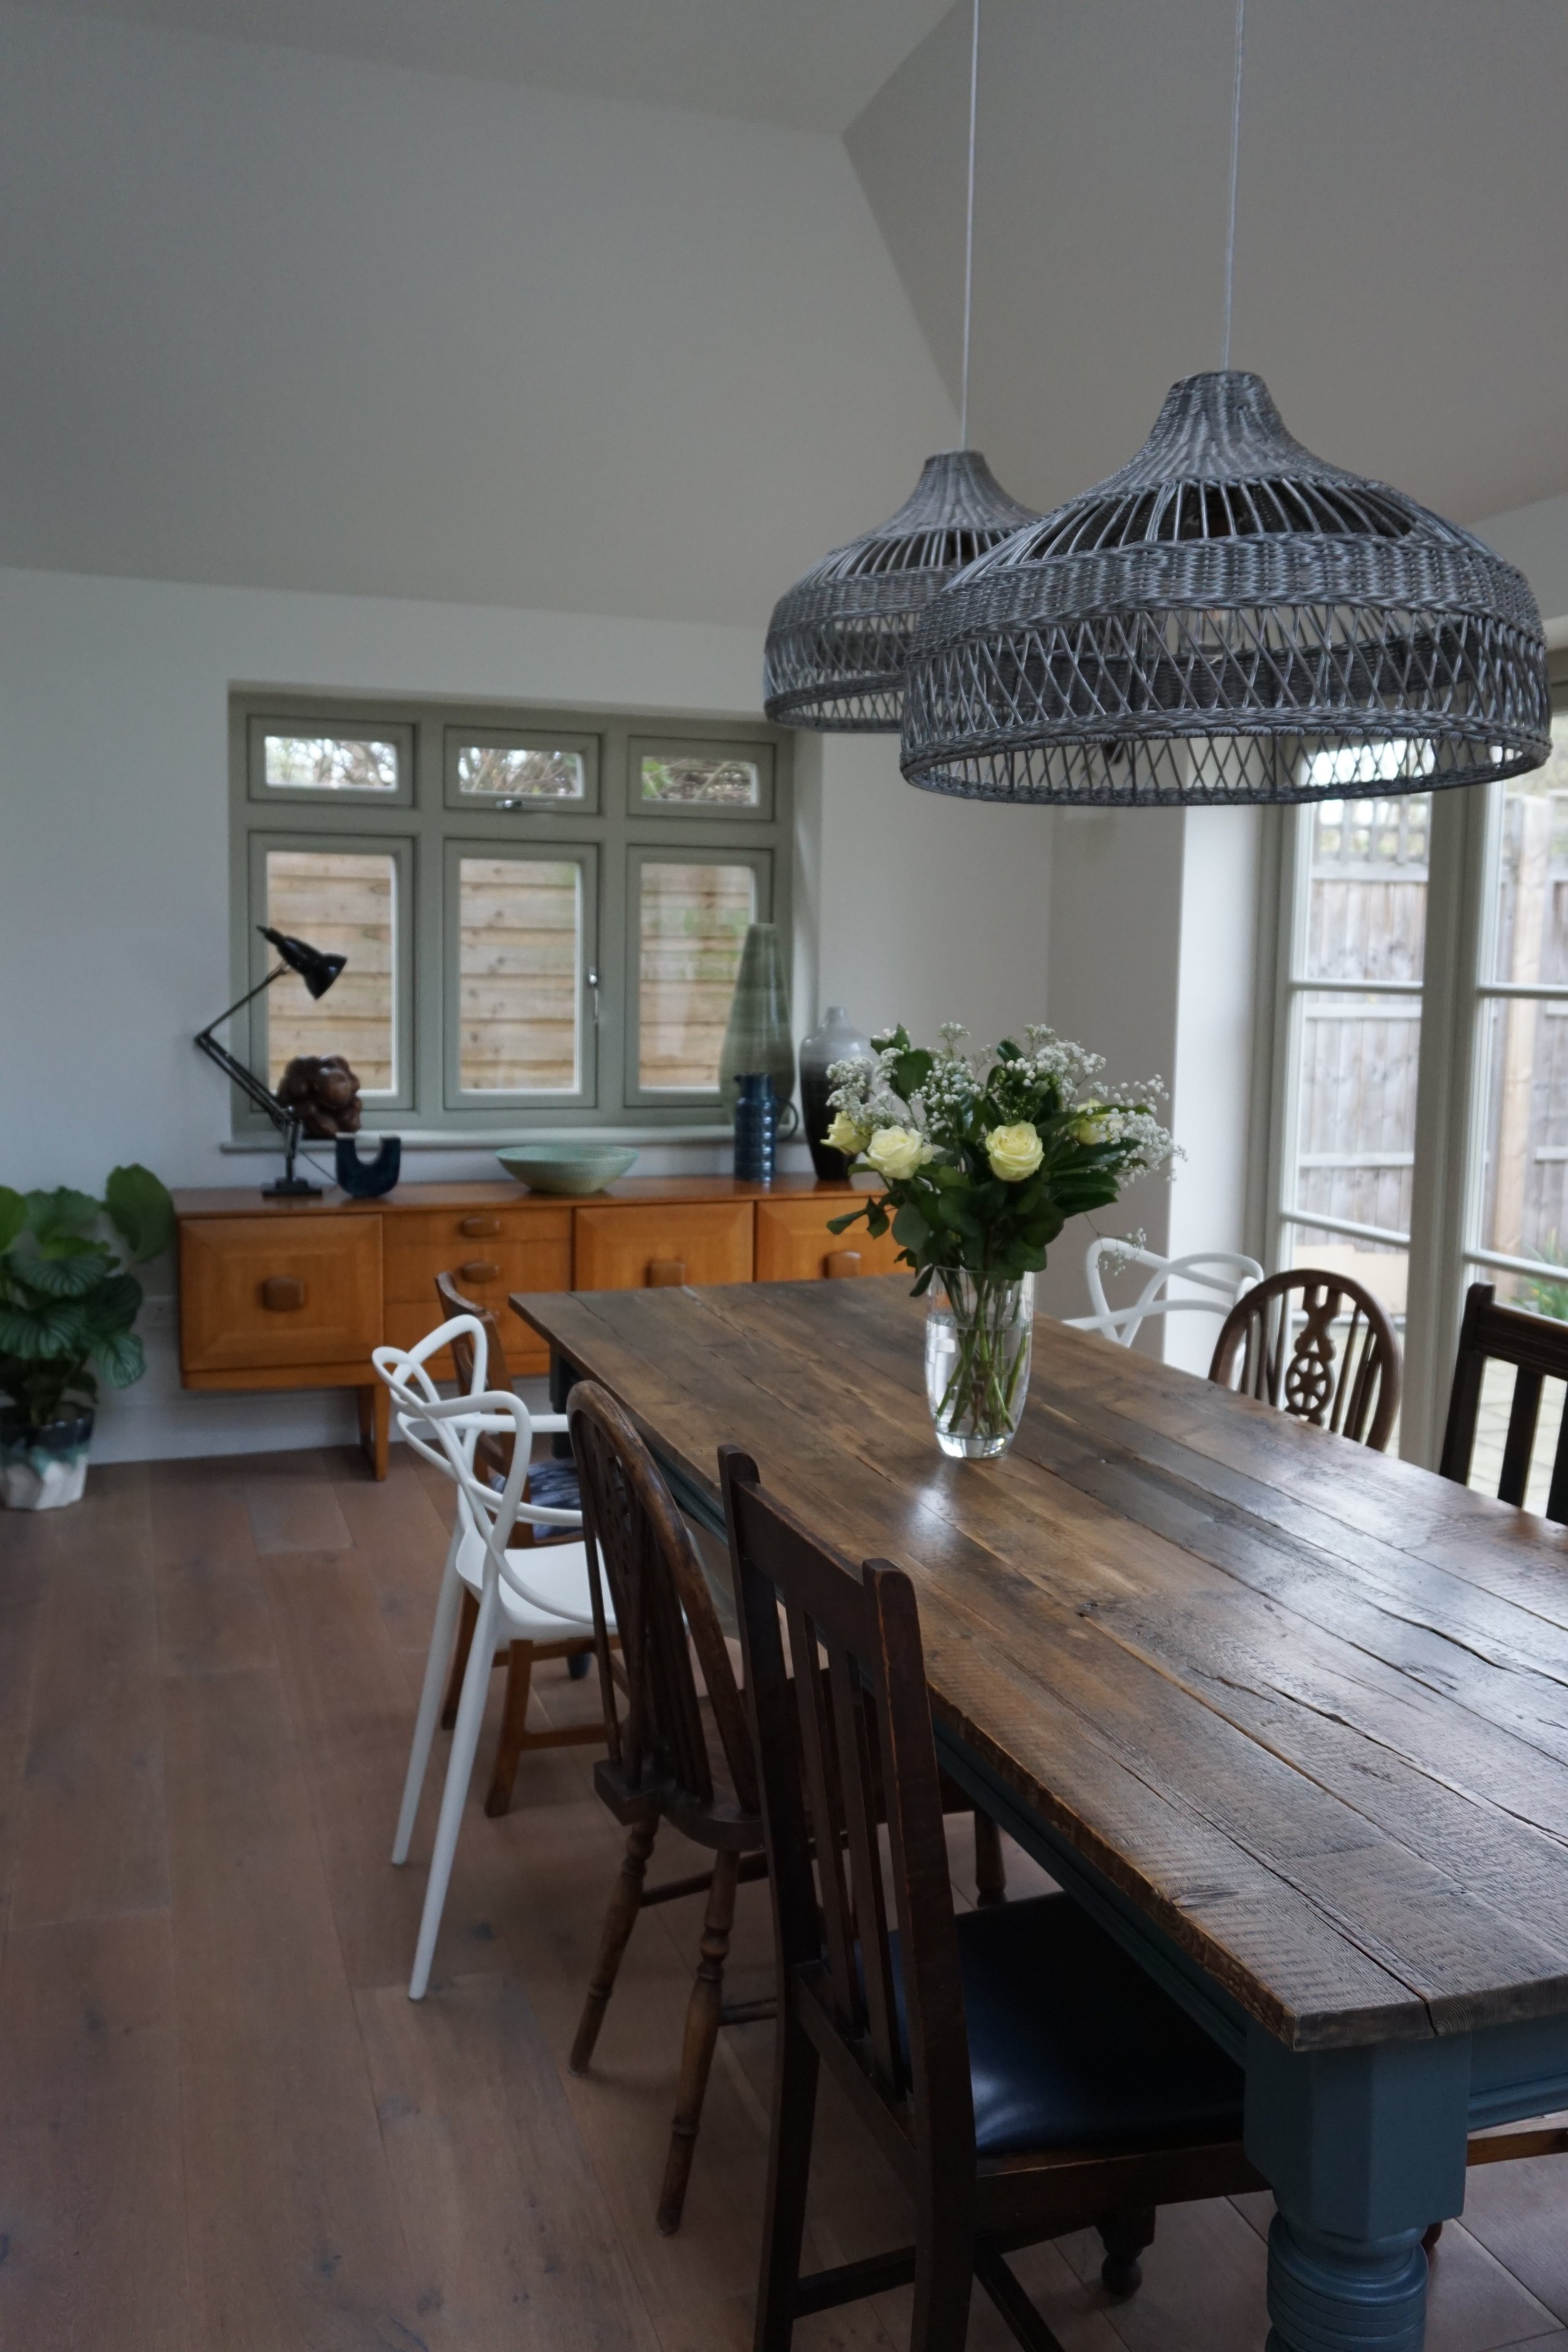 Dining space with bespoke table and mismatch chairs